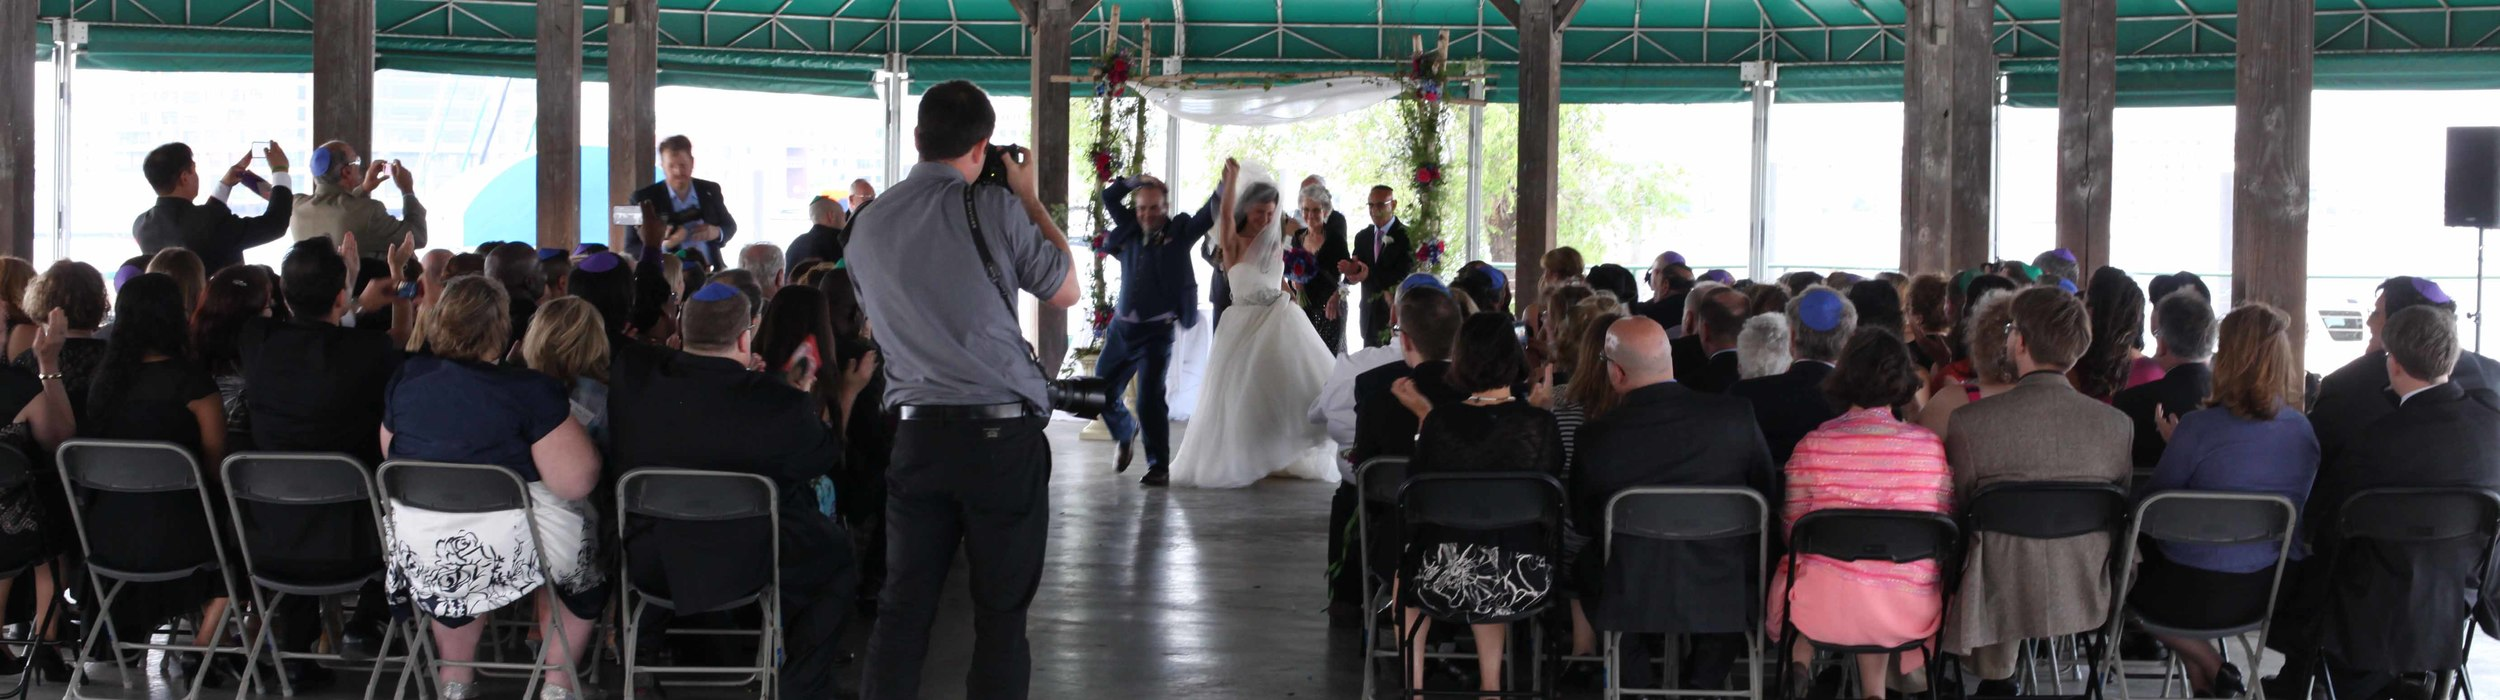 """Deetza and Bill are united and dance a joyful dance down the aisle. Deetza's name is Hebrew for """"The joy that comes from dancing"""".  LOVE. IT."""